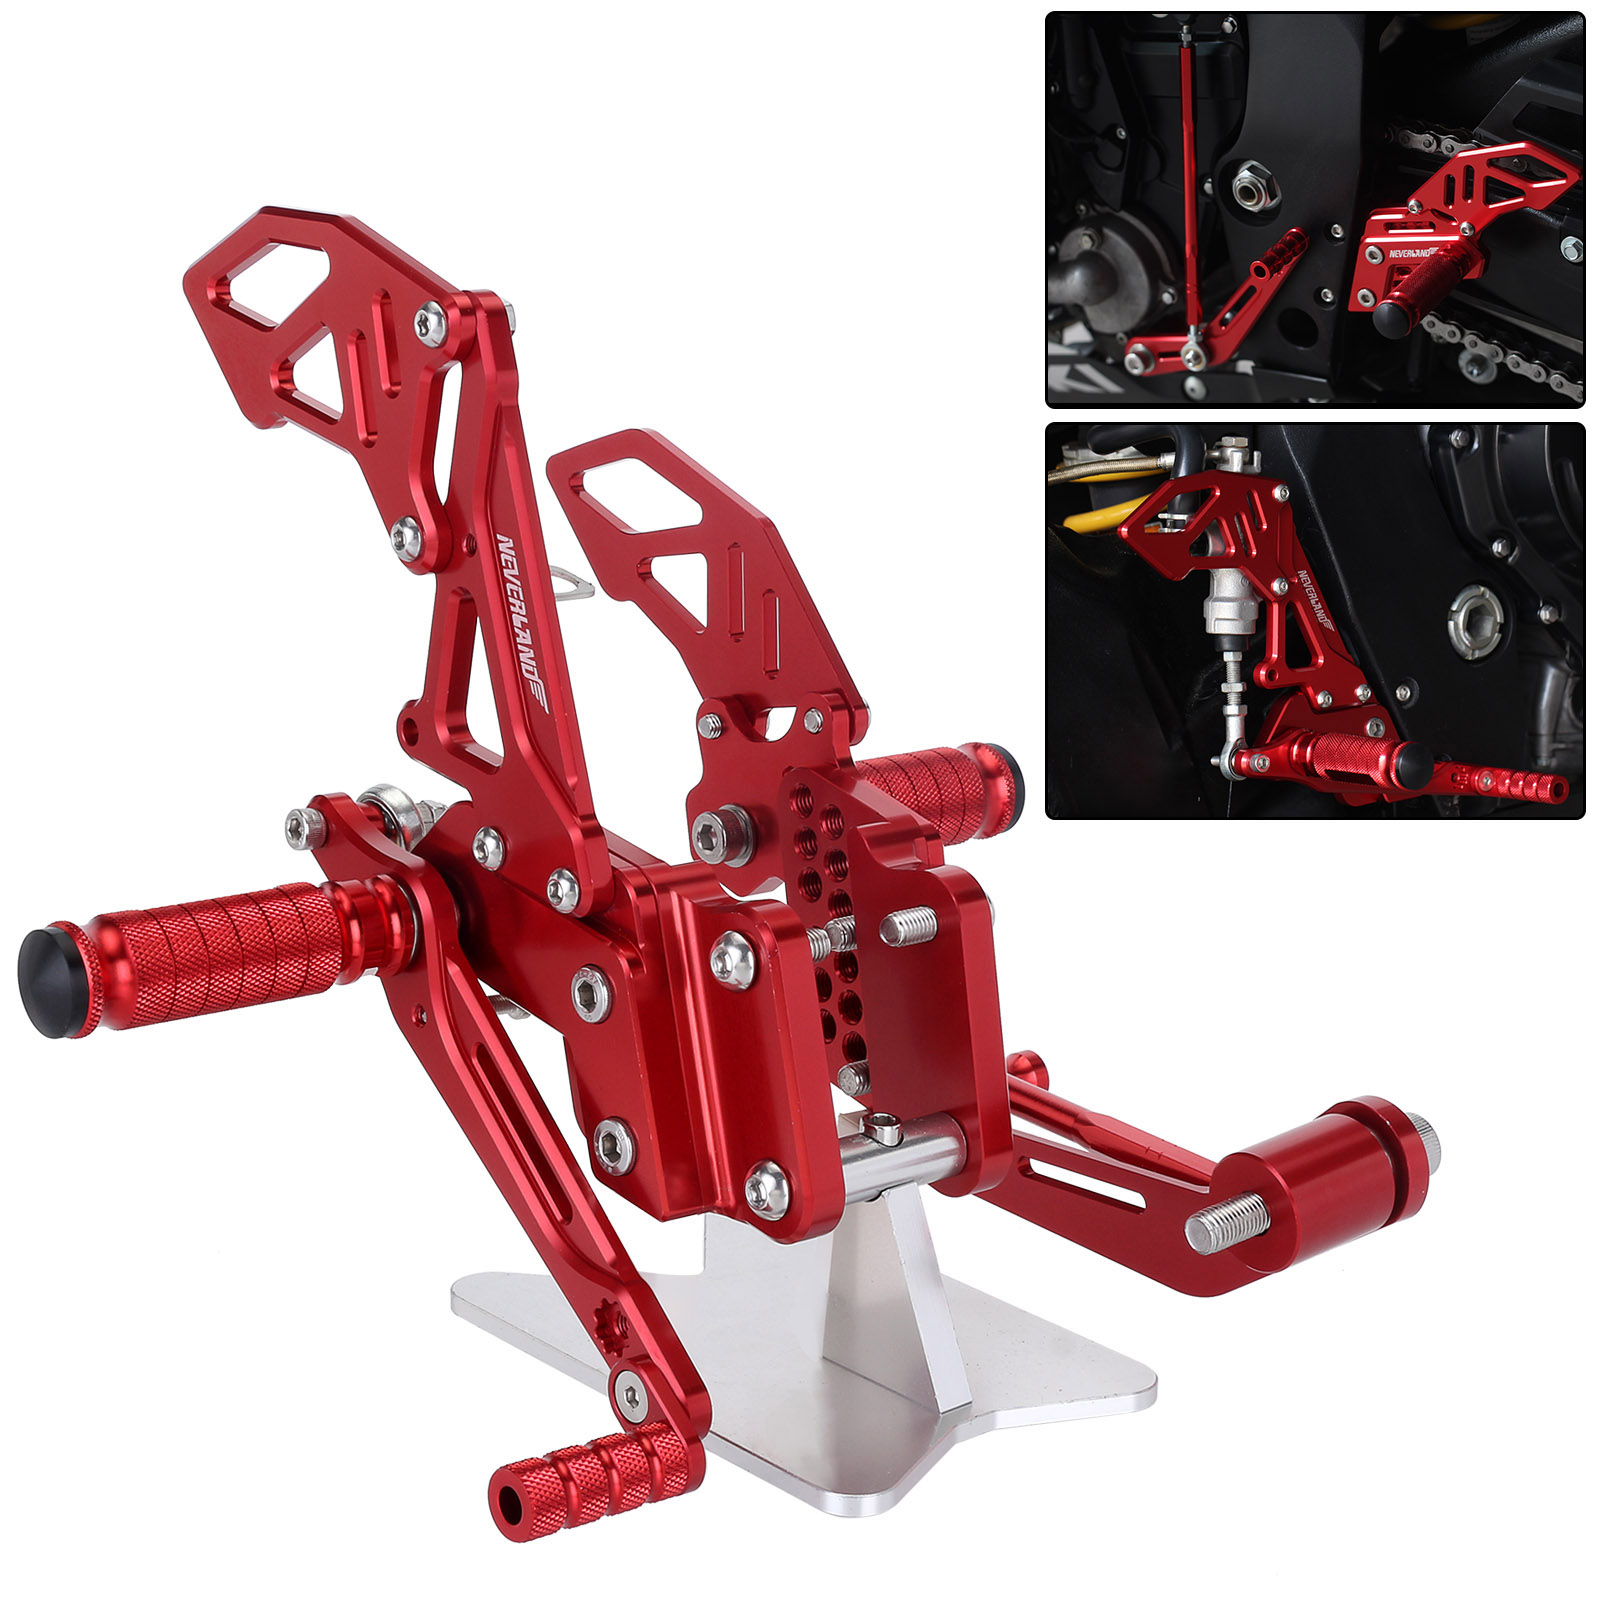 Red Motorcycle Adjustable Rider Rear Sets Rearset Foot Rest Pegs For SUZUKI GSX-R600/750 GSXR 600 750 2006 2007 2008 2009 2010 motorcycle accessories custom fairing screw bolt windscreen screw for suzuki gsxr 600 750 gsx r 600 750 2006 2007 2008 2009 2010